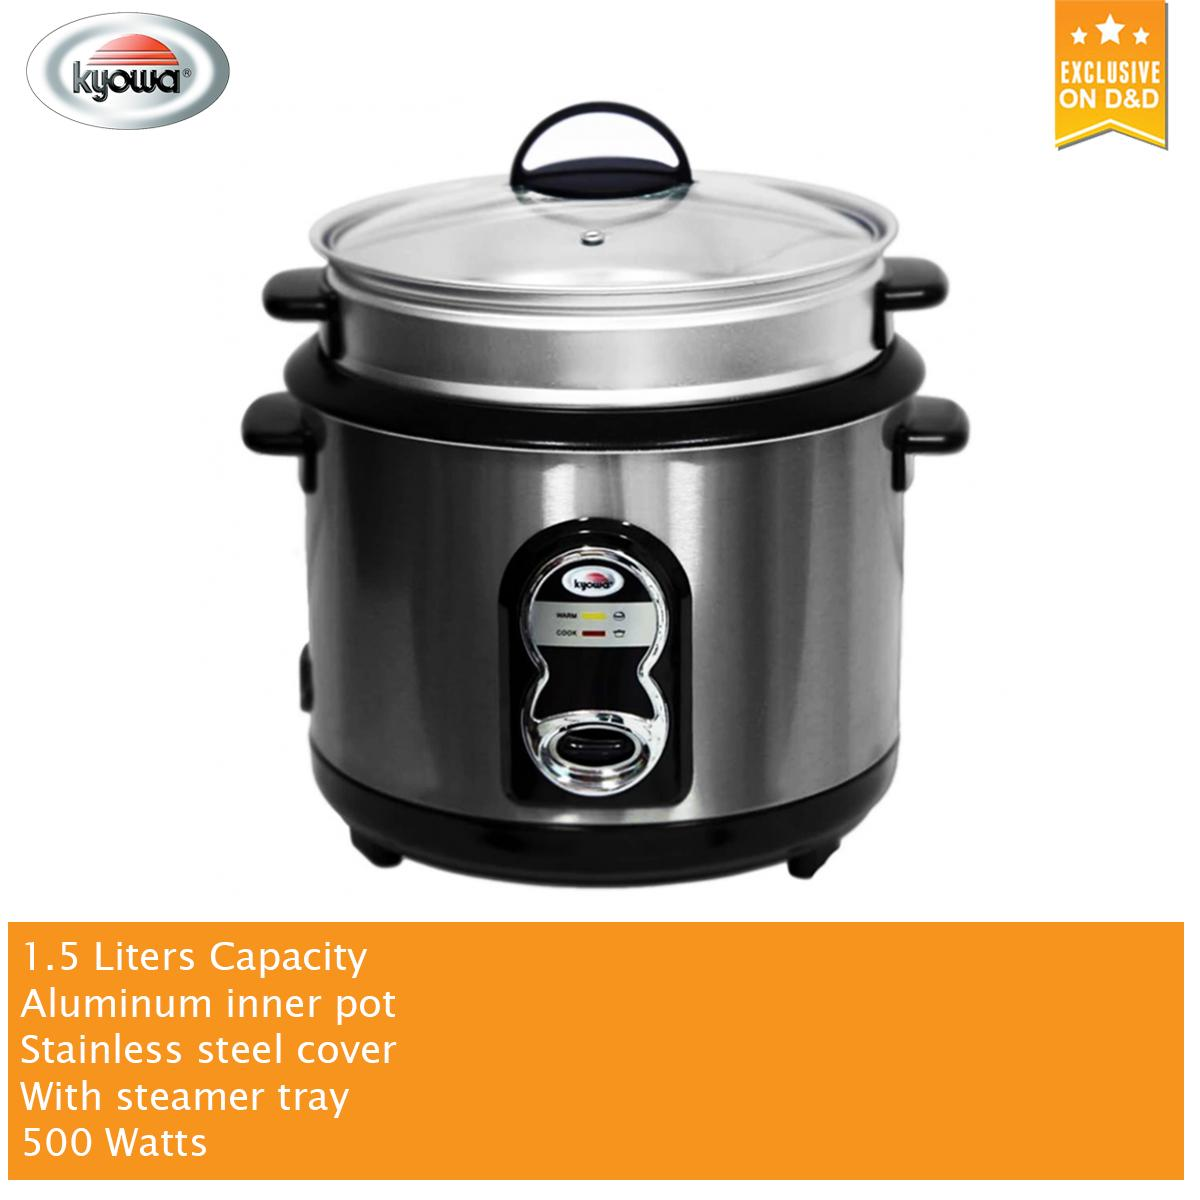 Kyowa Rice Cooker Philippines Steamer For Sale Prices Wiring Diagram 15 L With Stainless Steel Cover Aluminum Inner Pot Kw 2043